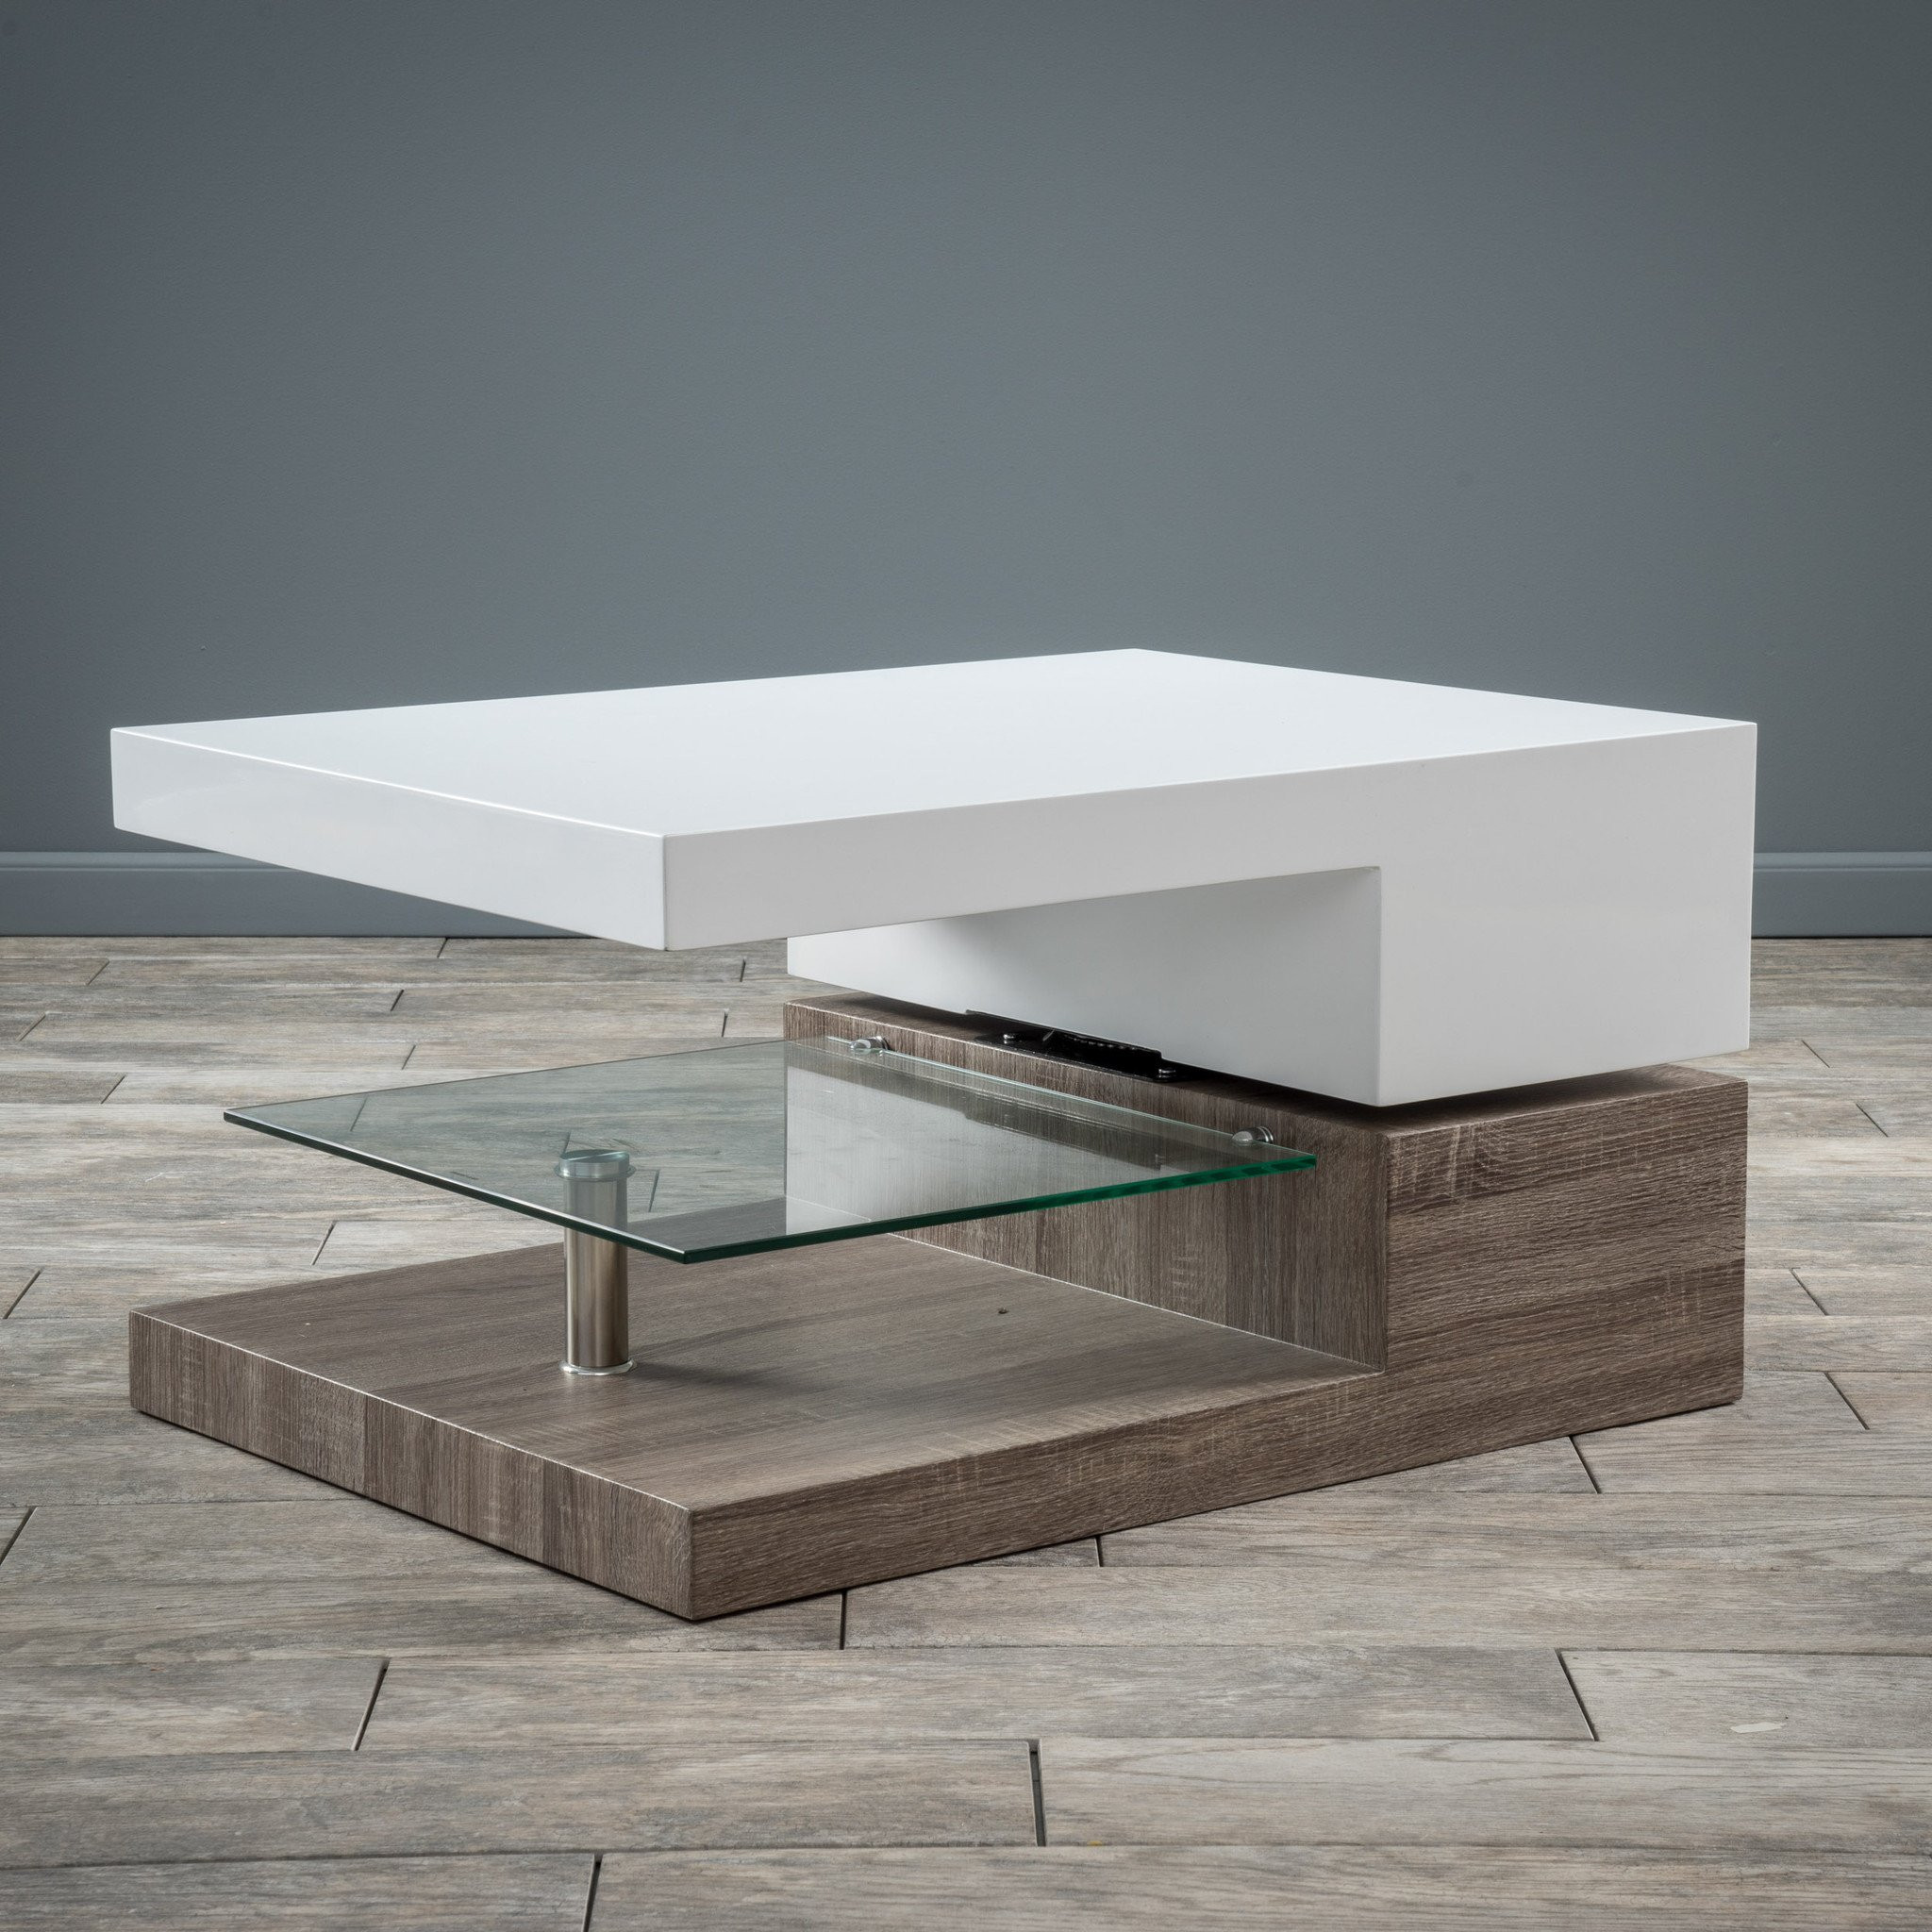 Emerson Rectangular Mod Swivel Coffee Table w/ Gla...